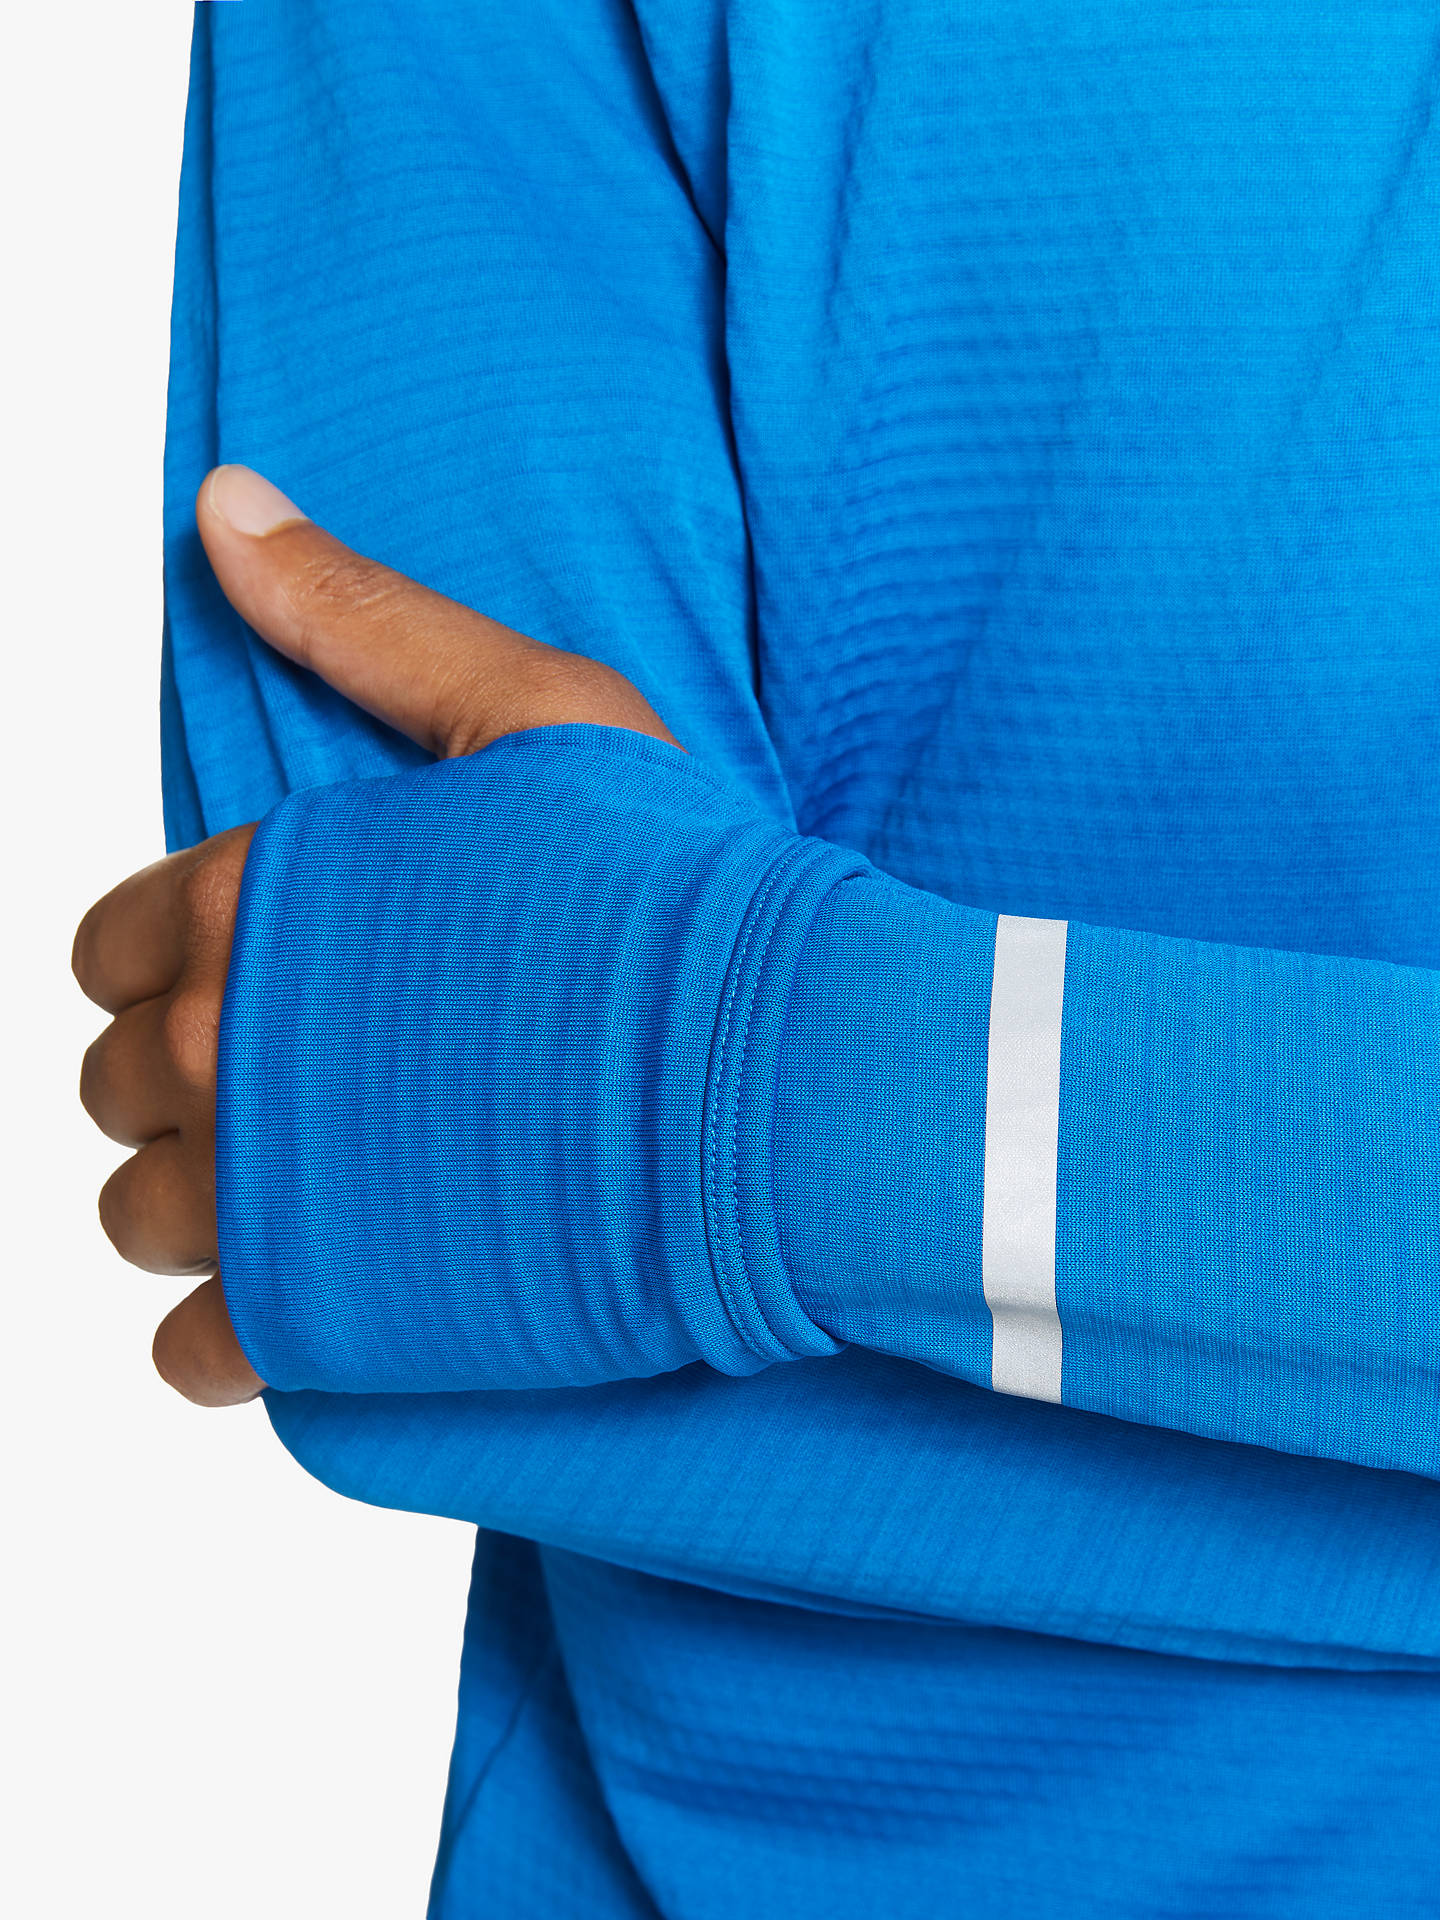 Buy Ronhill Tech Matrix 1/2 Zip Long Sleeve Running Top, Atlantic/Powder Grey, S Online at johnlewis.com